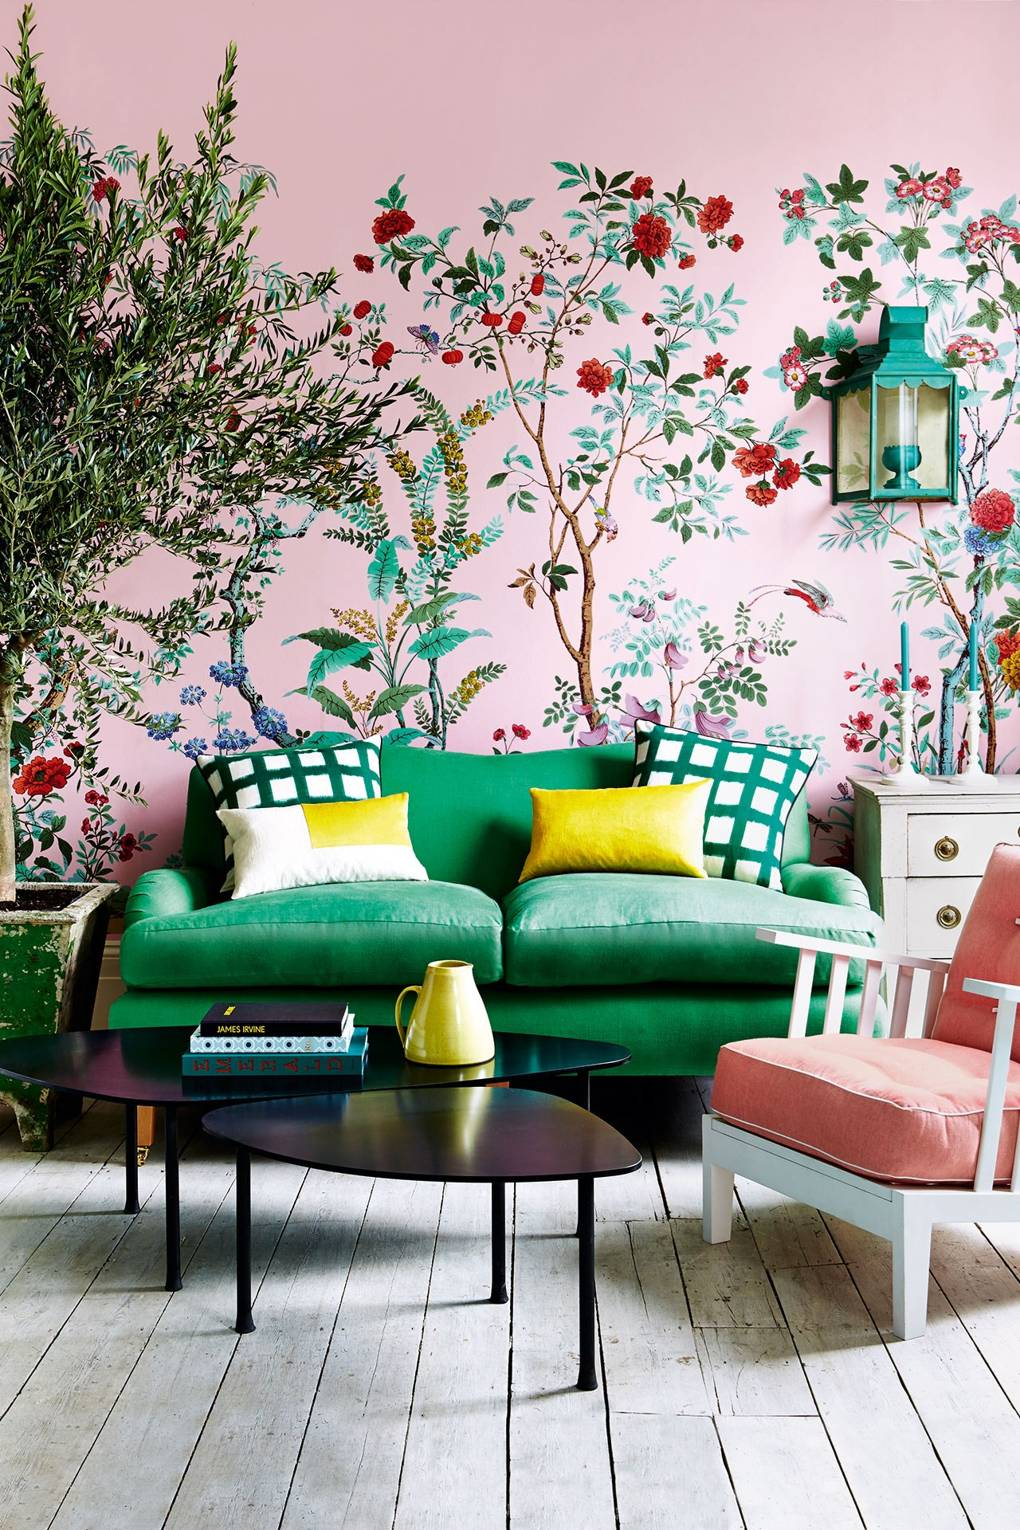 Pink and Green Living Room Inspiration | 20 Photos That Will Prove Decorating with Pink and Green is the Next Big Thing